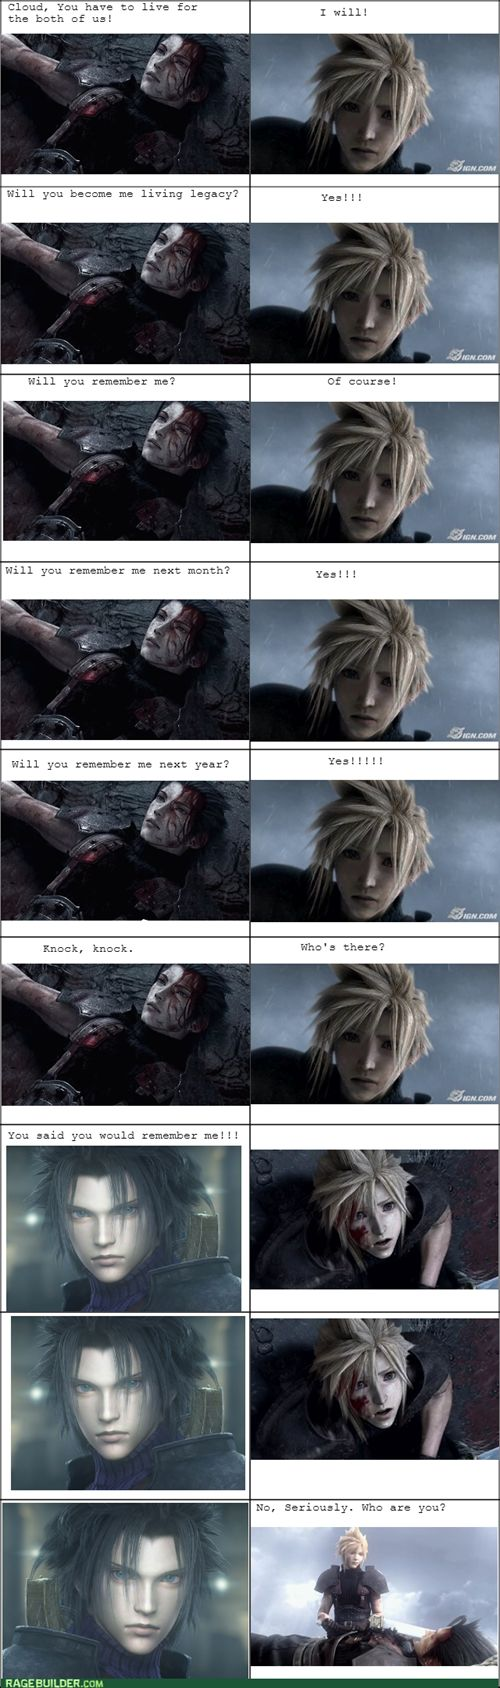 Zack's Dying Wish ..I should have have laughed as hard as I did at this.  Its wrong and yet so accurate when you think about it....lol